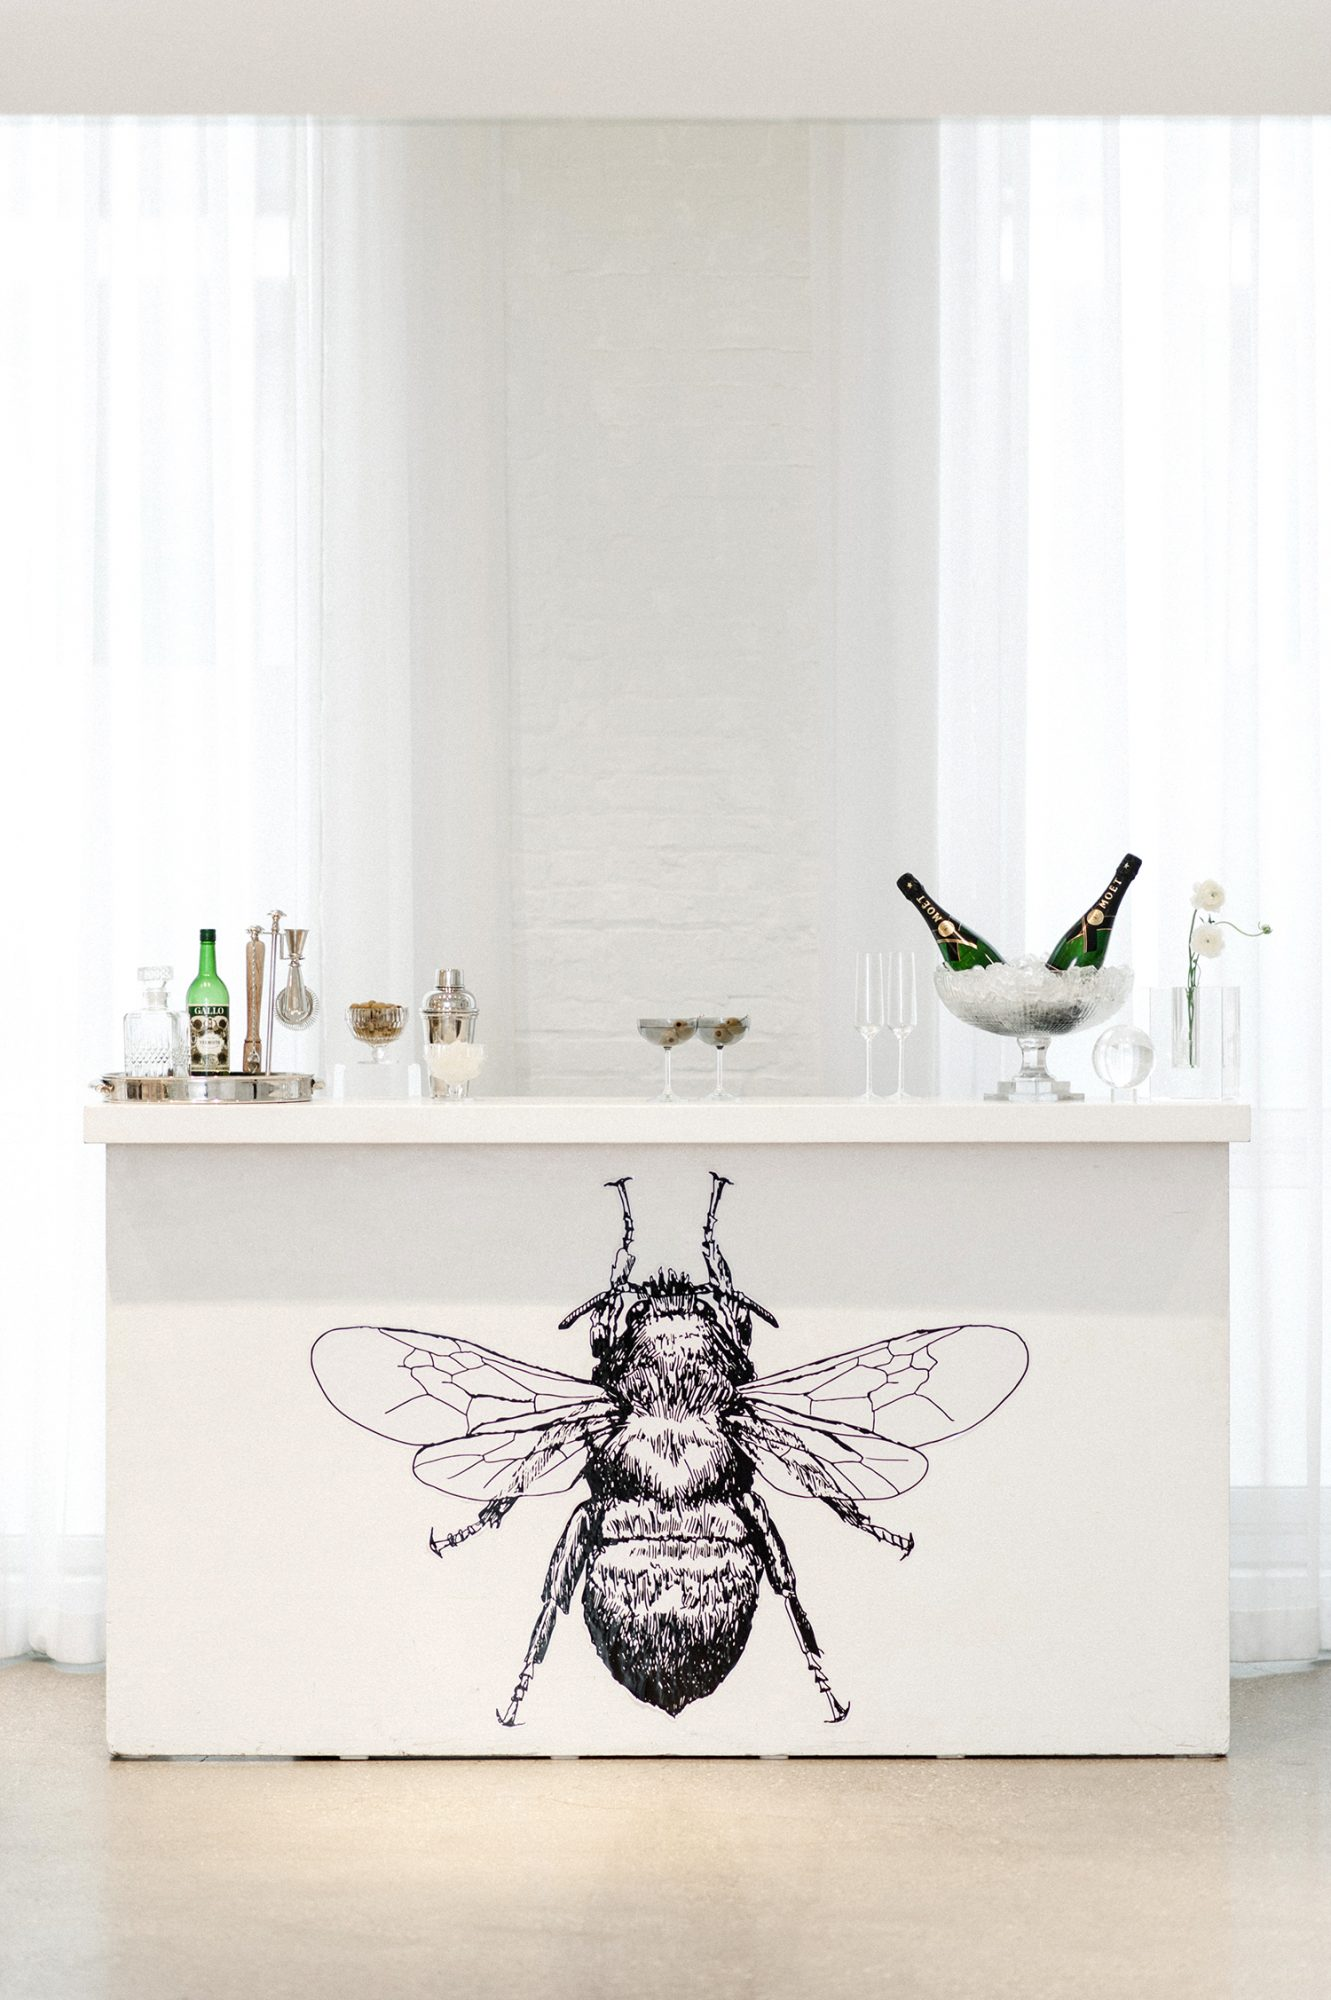 bee wedding ideas bar with black bee illustration